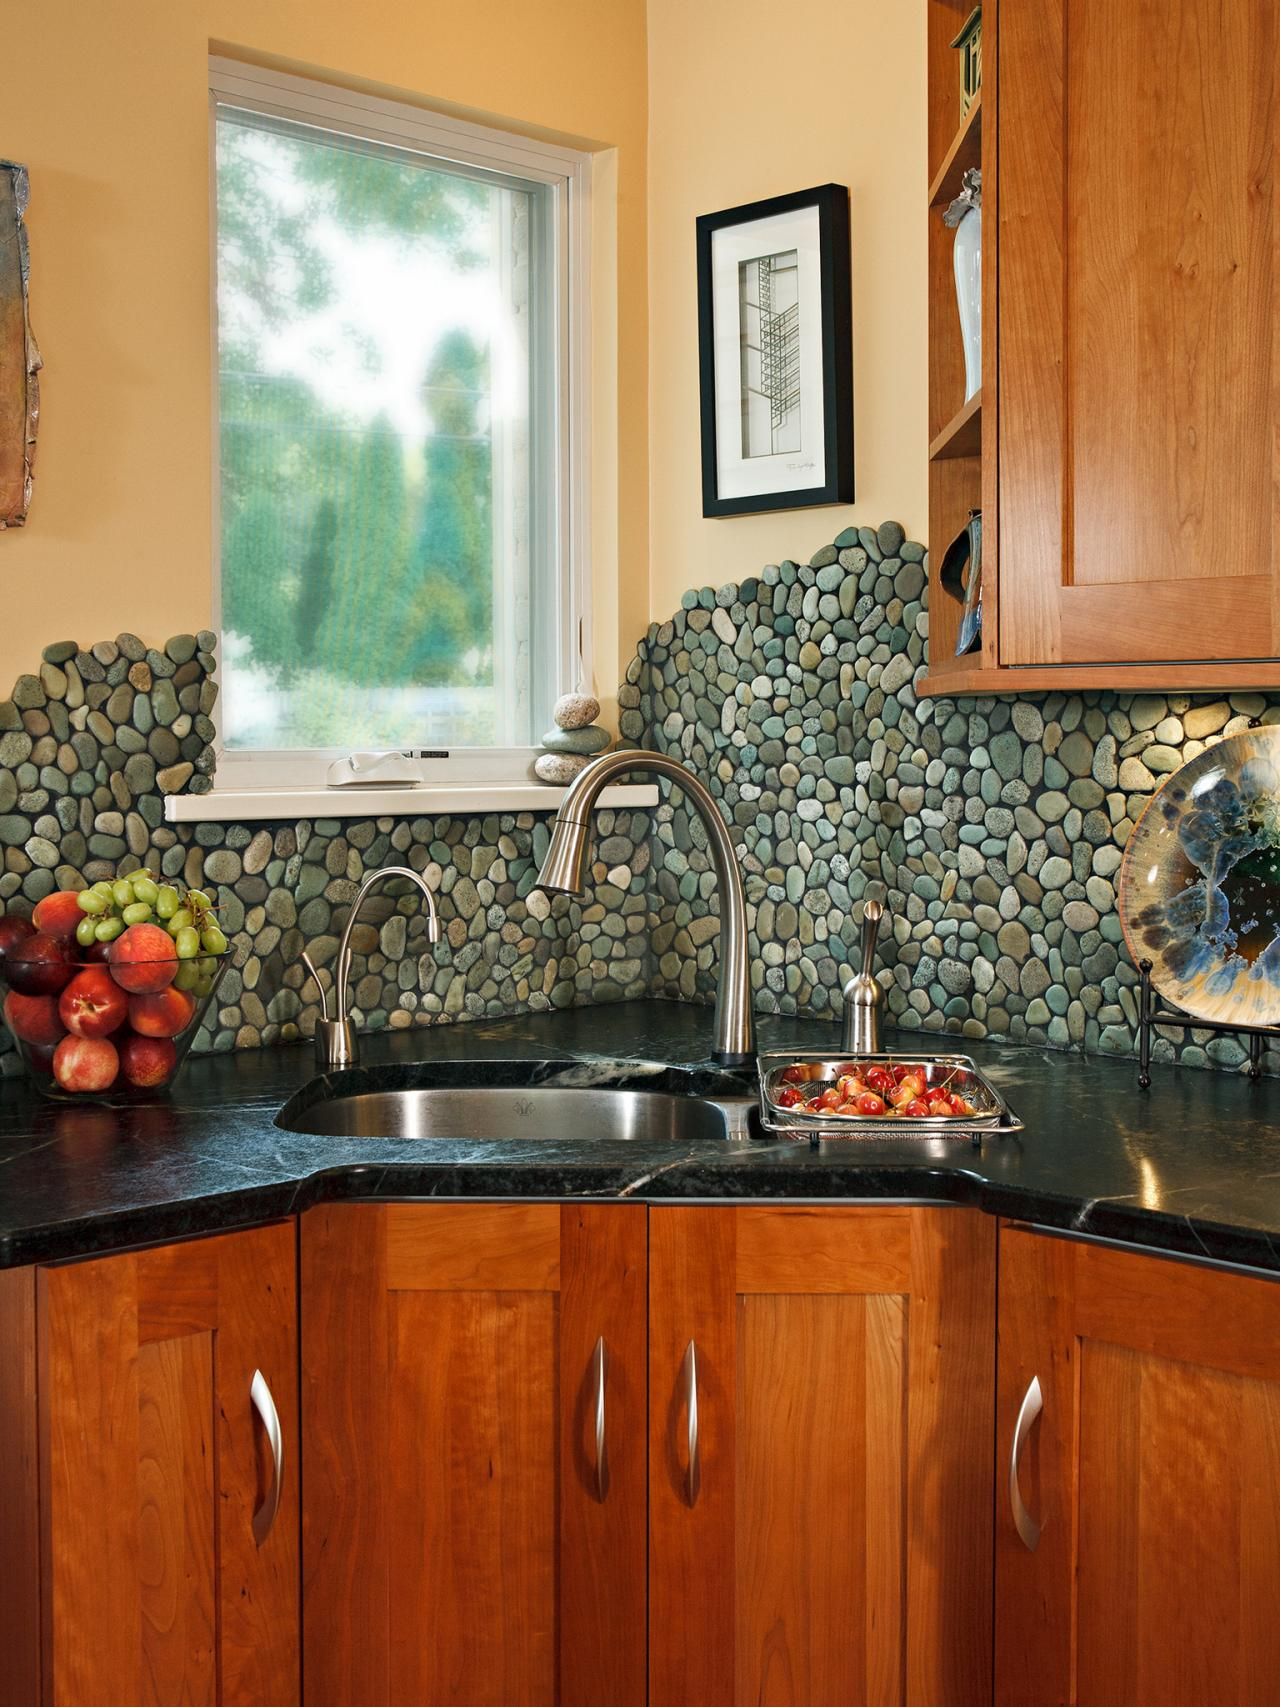 river rock backsplash, give a new and natural accent to your